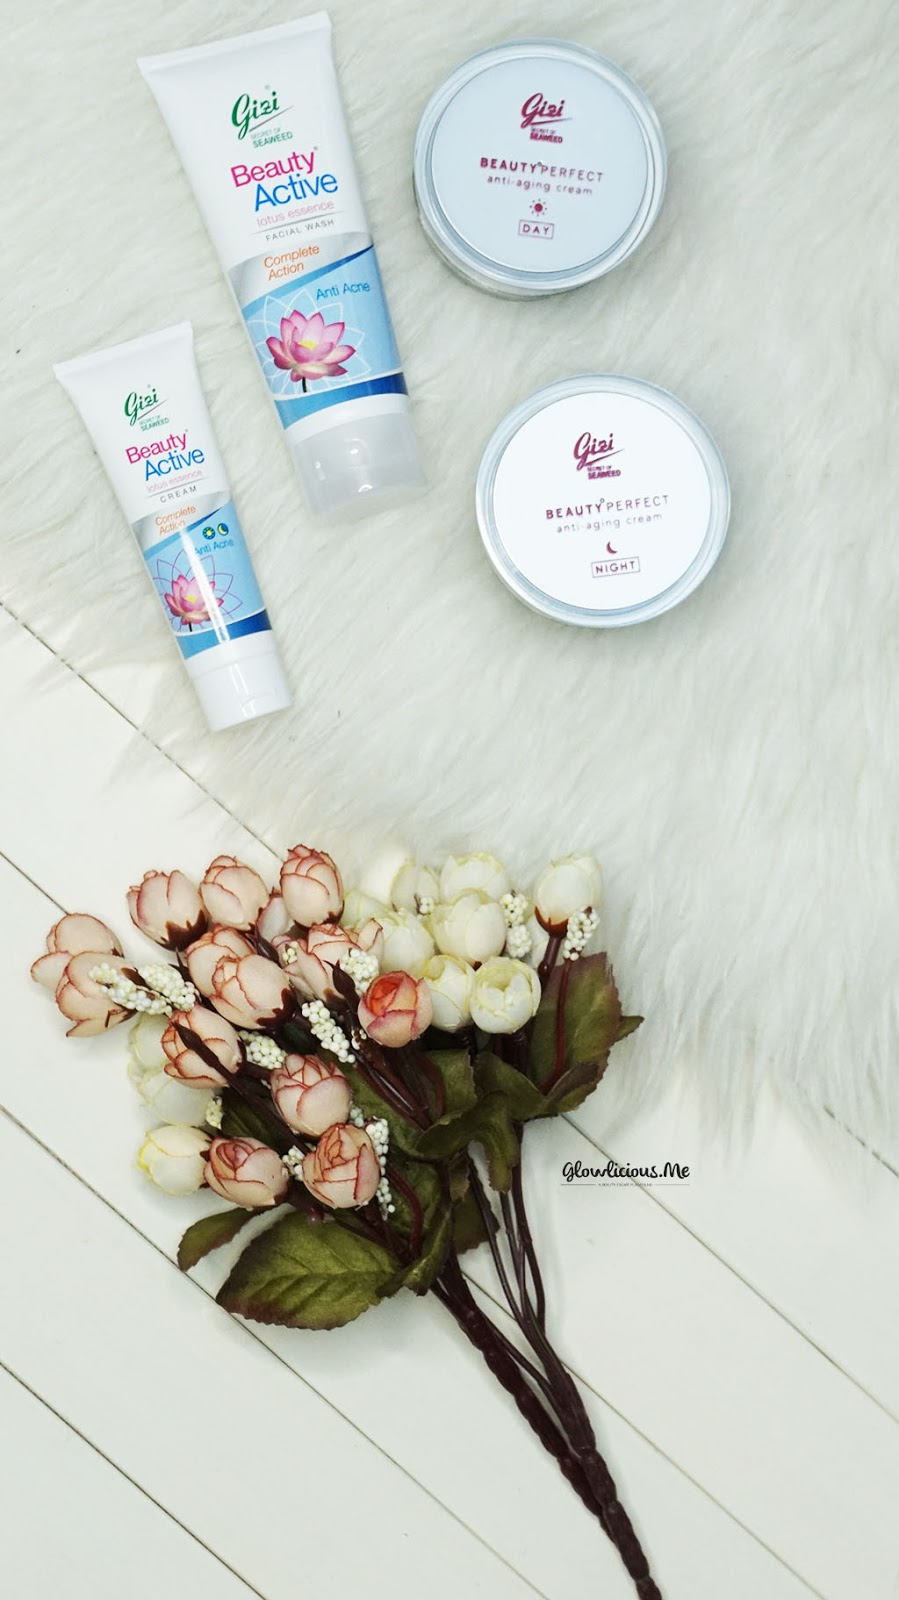 Review Rangkaian Skincare Gizi Beauty Perfect Anti Aging & Gizi Beauty Active Lotus Essence